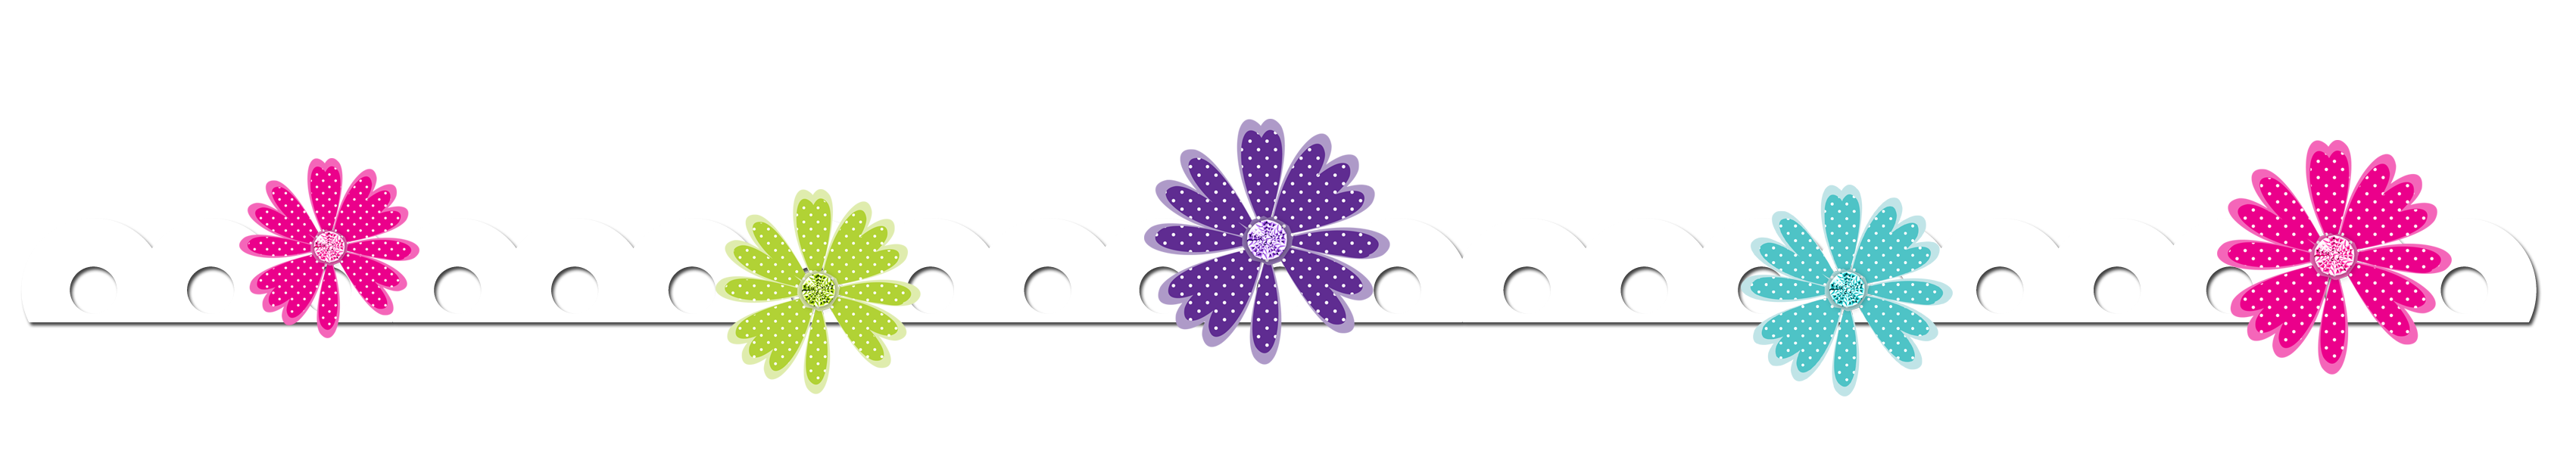 Clip art all things. Daisy clipart banner clipart transparent